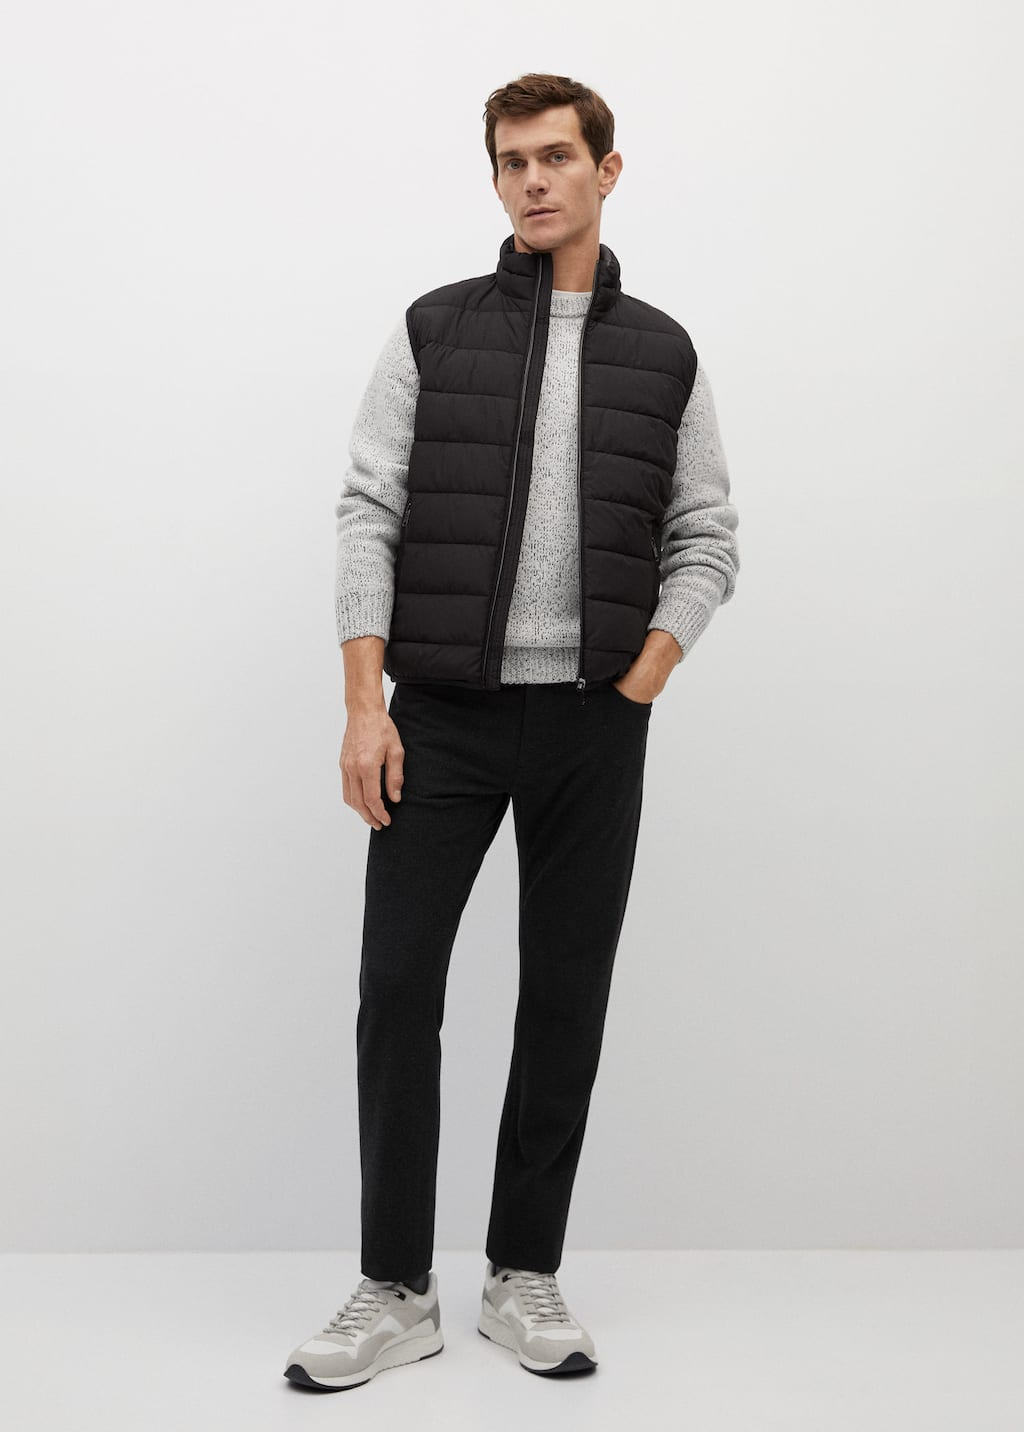 How to style a gilet